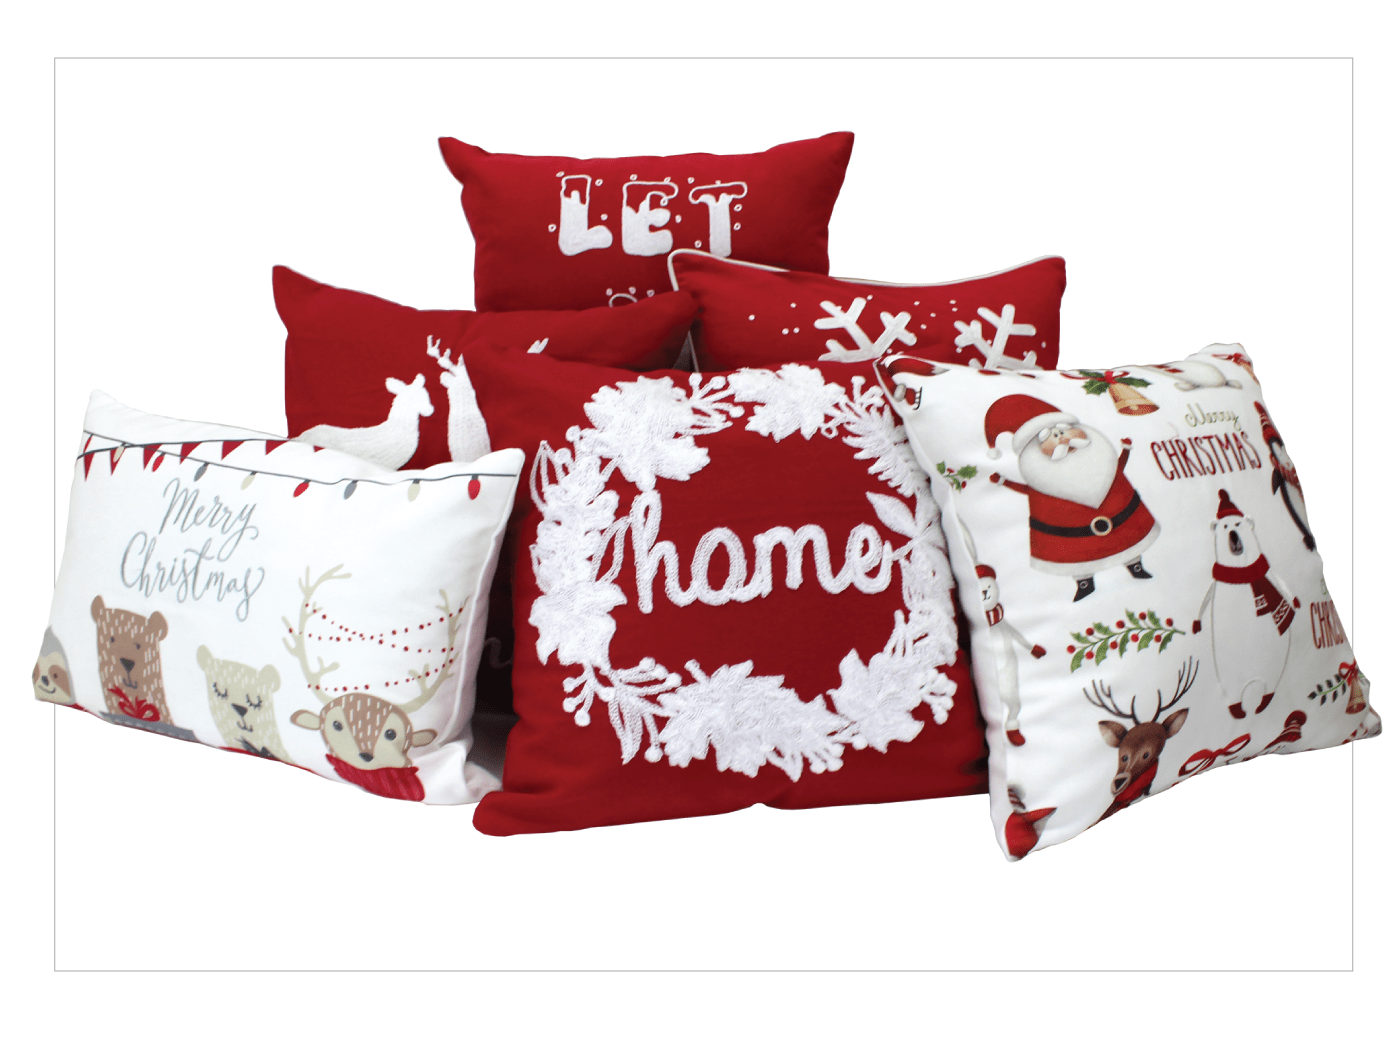 photo of Christmas holiday cushion covers in a red/white theme featuring santas, snowflakes, wreaths and winter characters